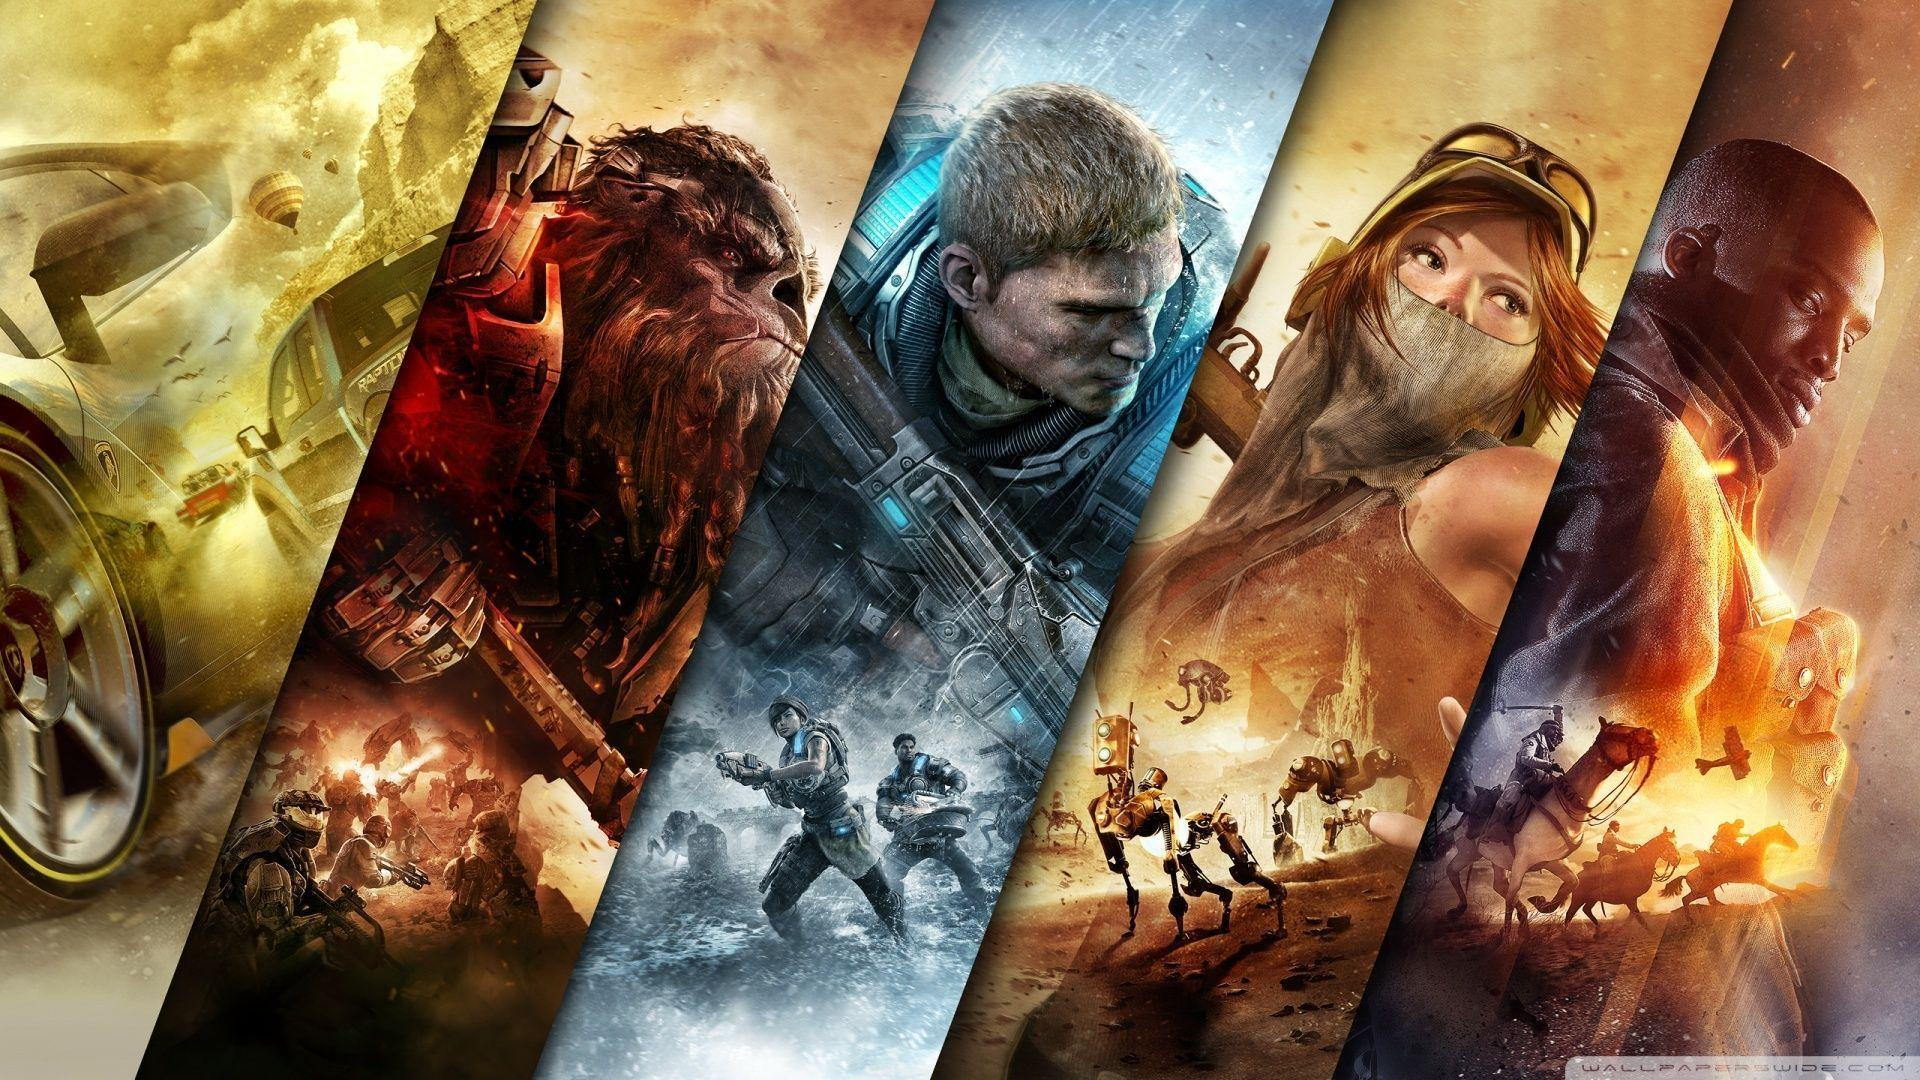 Xbox Games Wallpapers - Wallpaper Cave